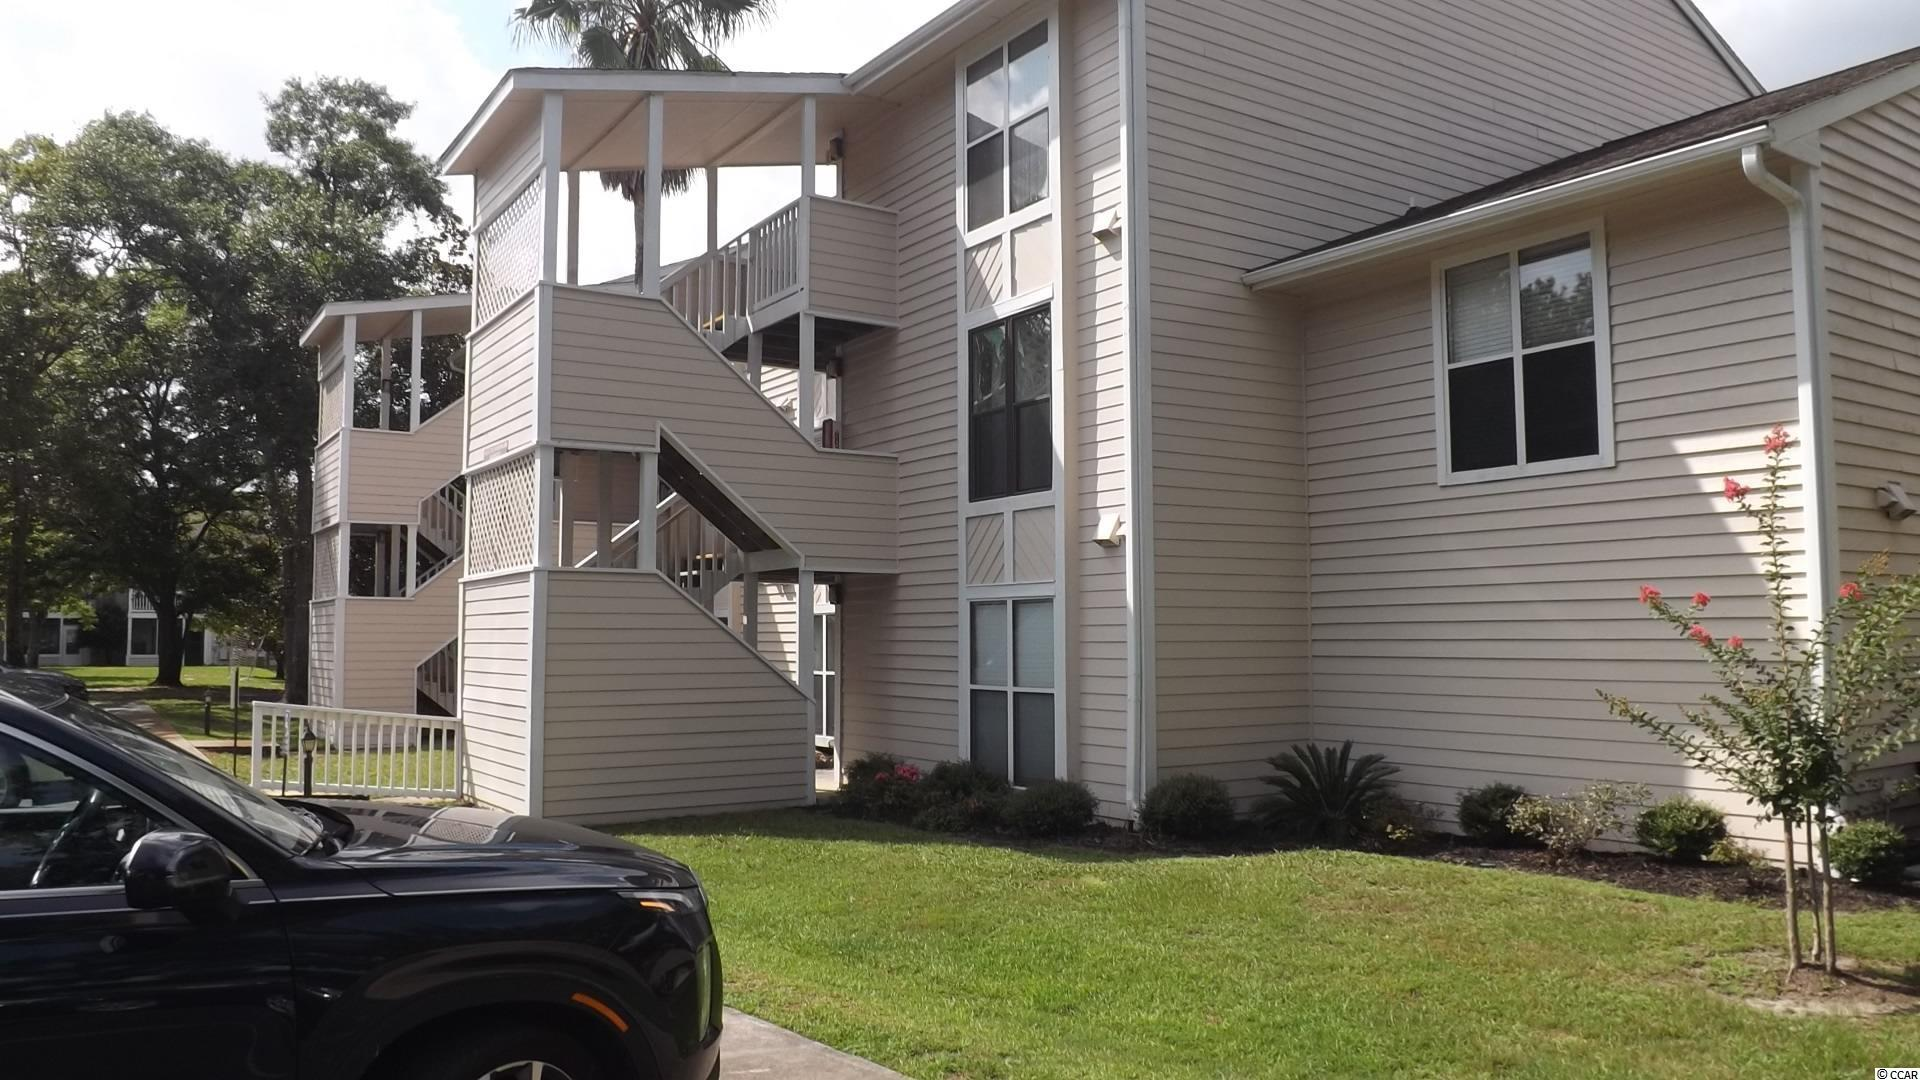 Affordable ground floor,one bedroom/one bath condo at Little River Golf and Health (Little River Inn). Seller has upgraded with new carpet and paint. Spacious living area opens into a shaded patio. Breakfast bar and a full service kitchen area over look the living area. The condo comes with a primary bedroom and a large owners closet. The condo is located in the front of the property and is just a short walk to the pool and jacuzzi.  Little River Inn offers low HOAs, two pools a jacuzzi and trash bin. The grounds offer several picnic areas and is a short walk to Lifequest Spa. Little River Inn is only a 5 minute drive to the beach, has easy access to all major highways and is close to shopping and entertainment.